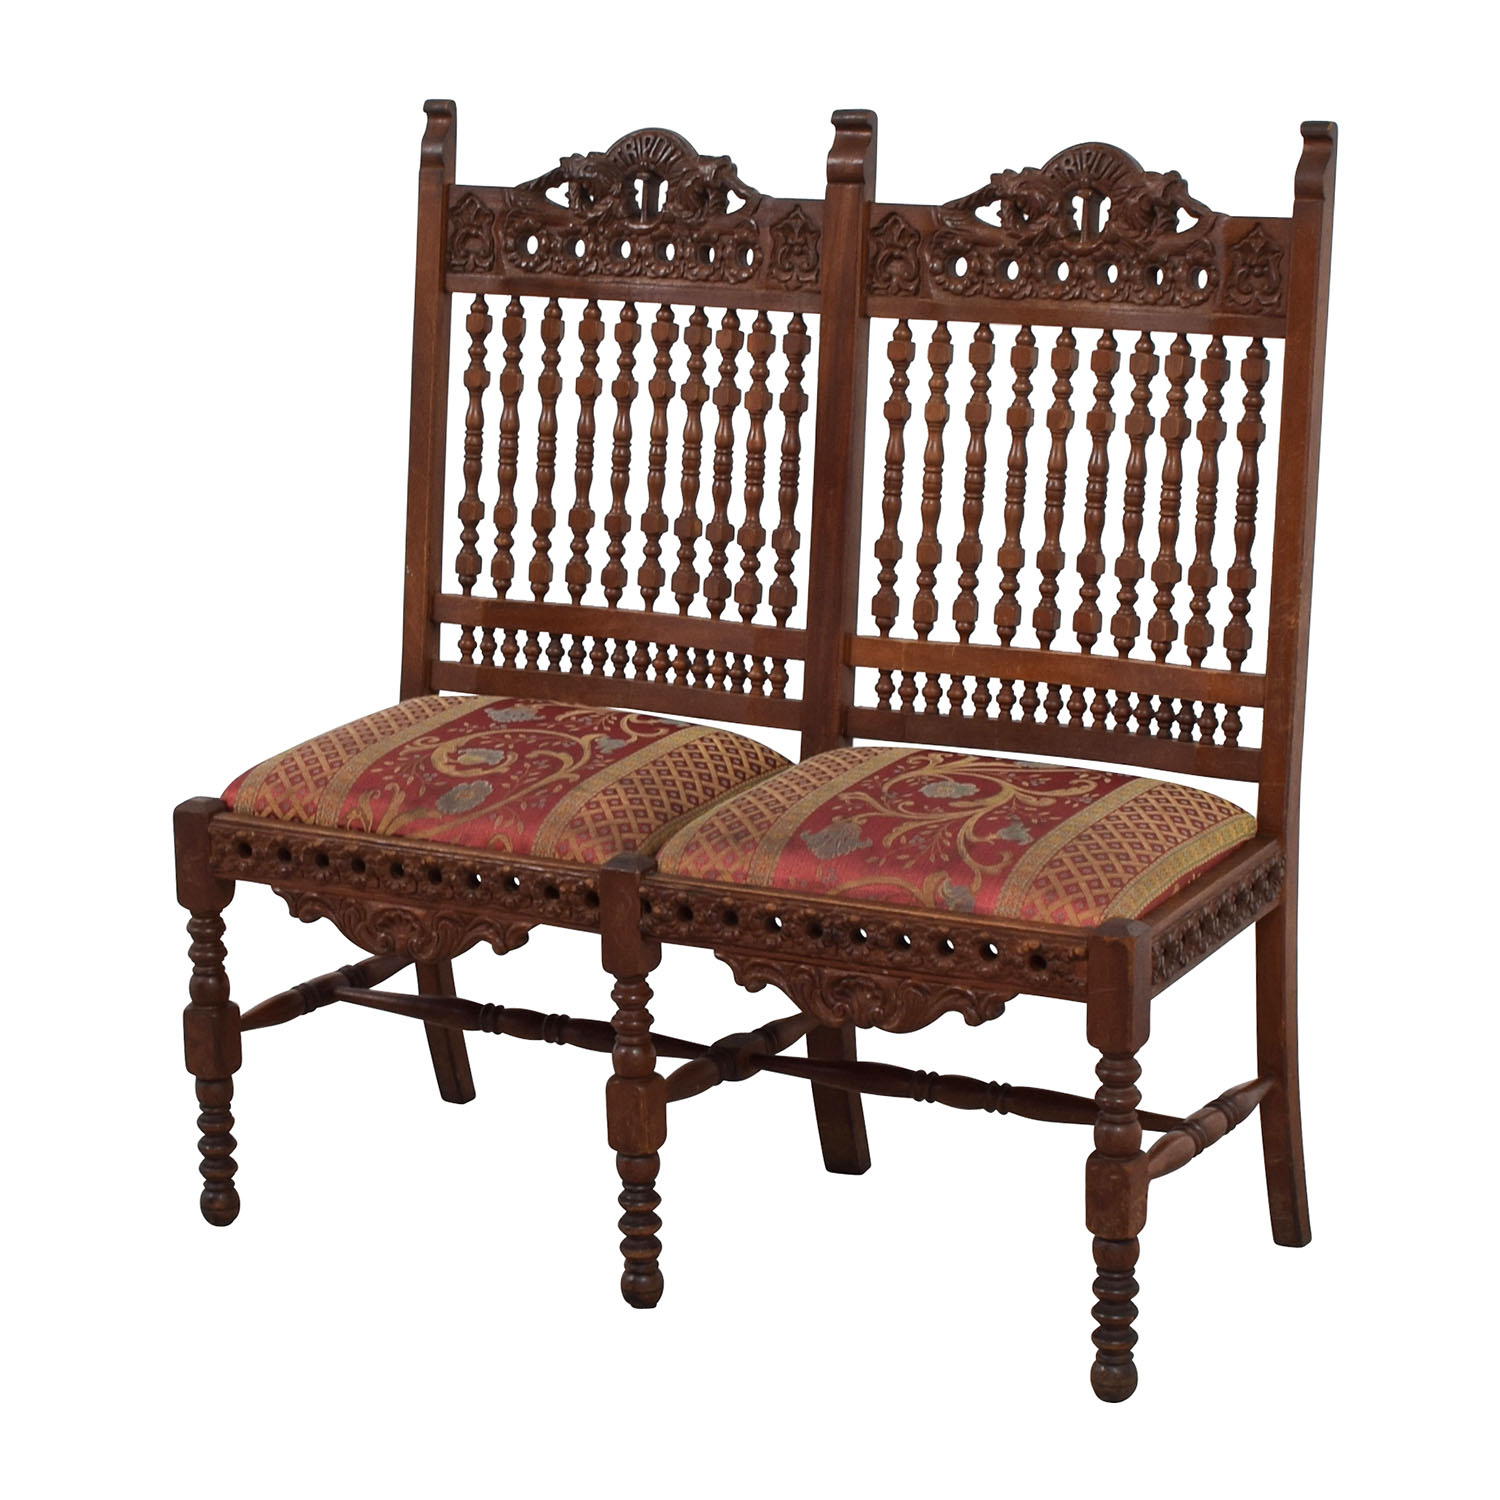 90 off hand carved antique baroque chair chairs for Antique baroque furniture